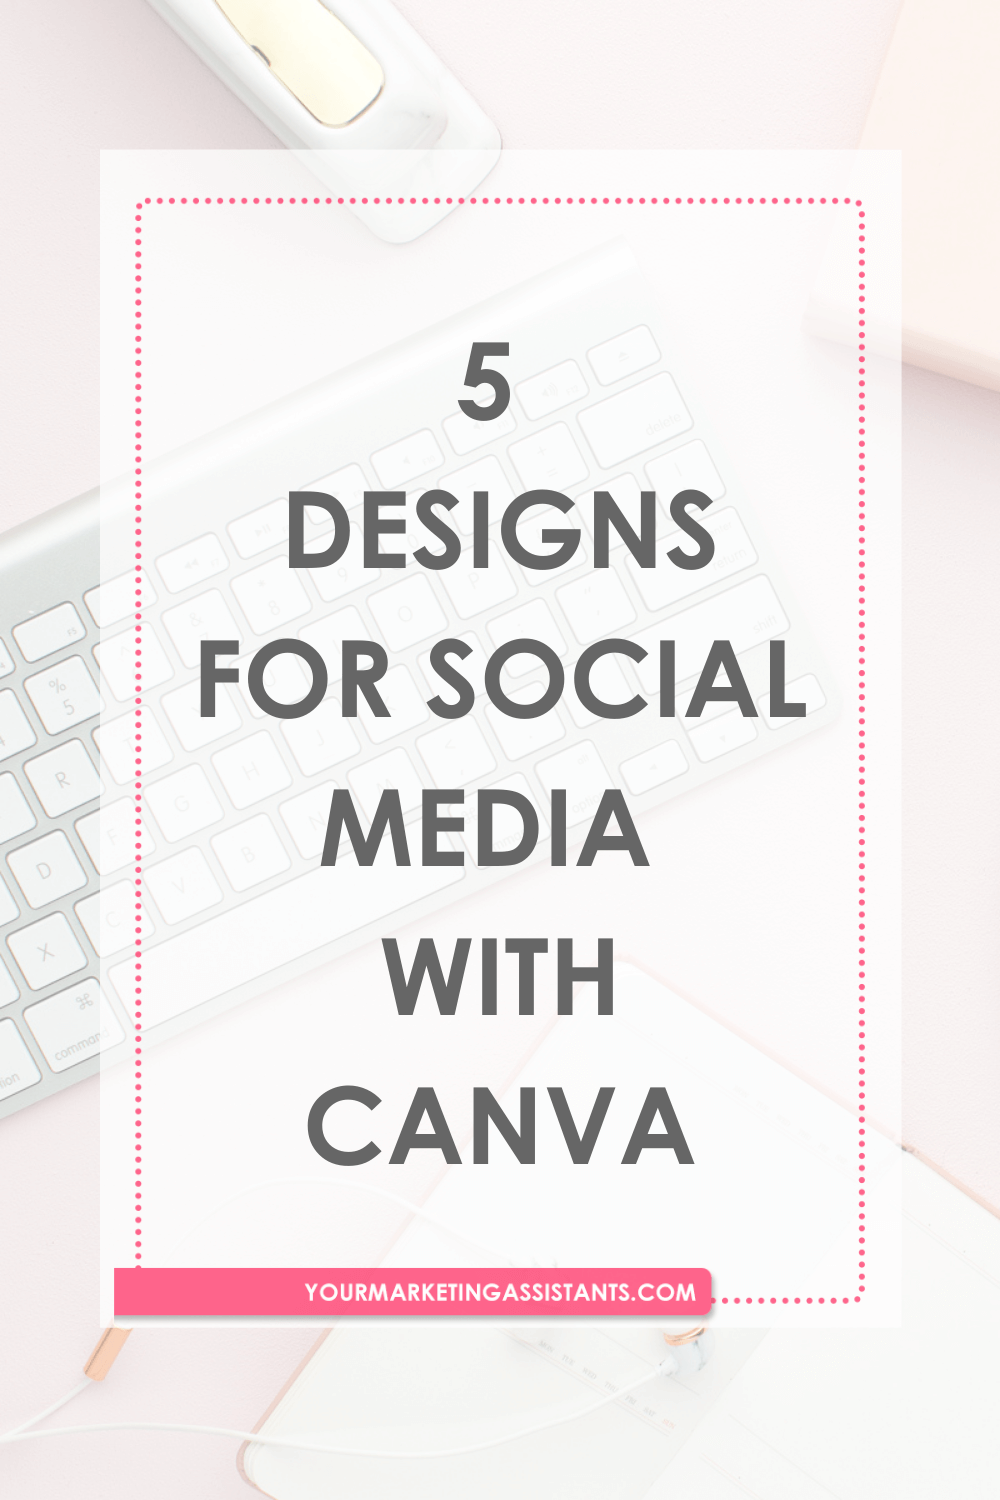 How to create a logo using Canva